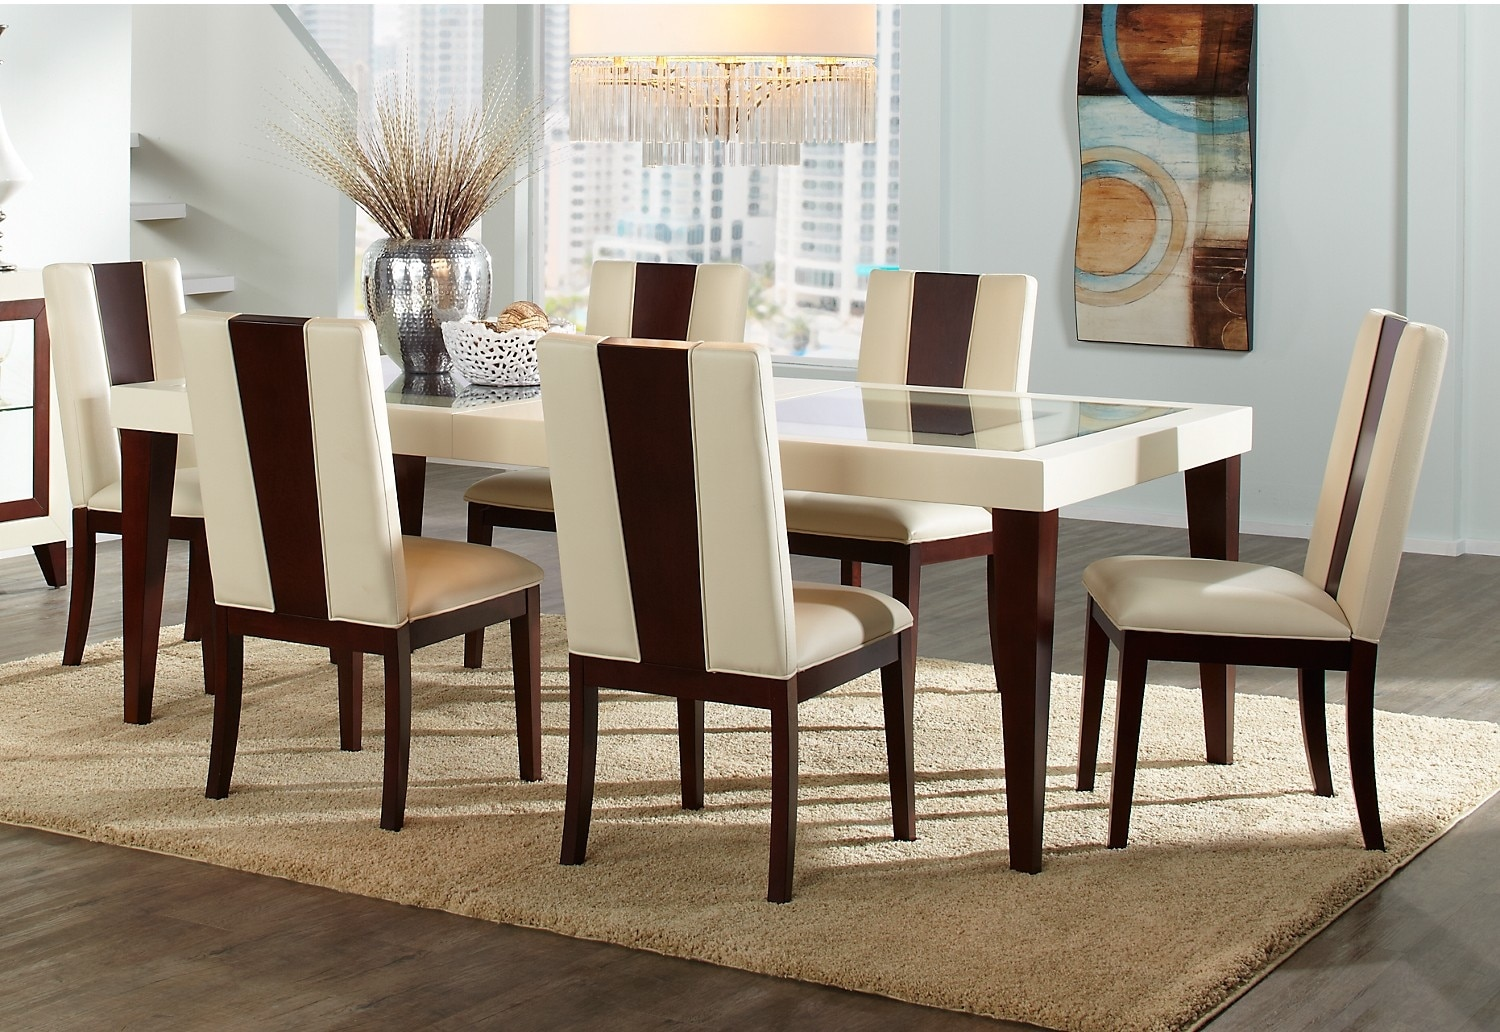 Dining room sets canada kitchen astonish kitchen tables for Dining room furniture images